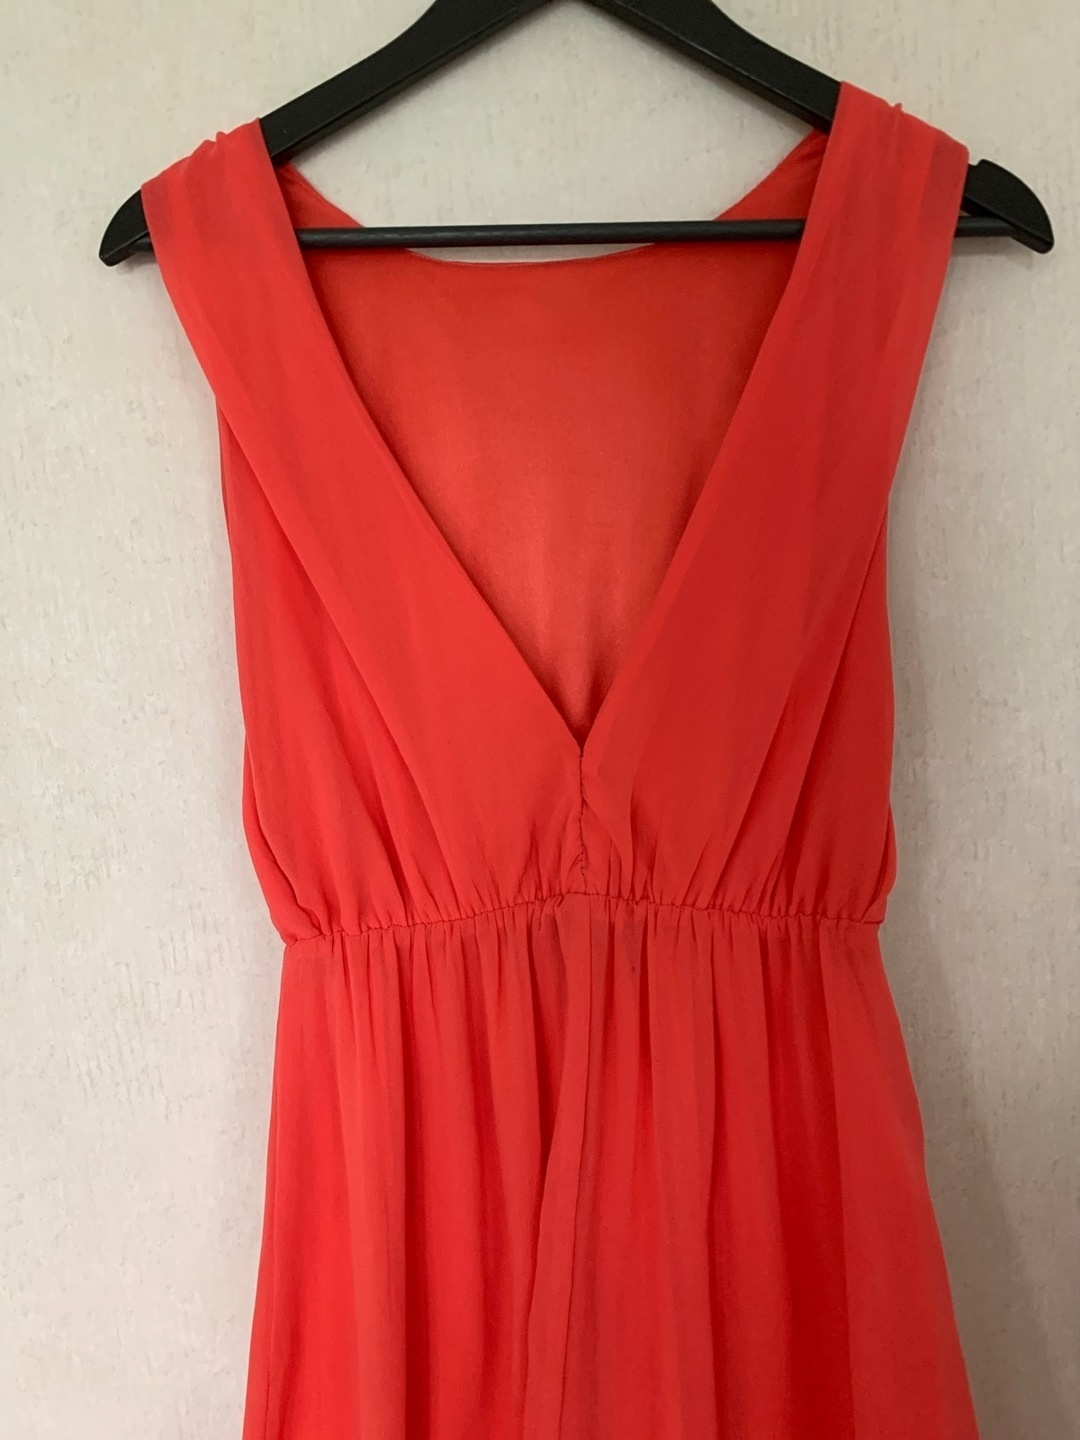 Women's dresses - BIK BOK photo 2